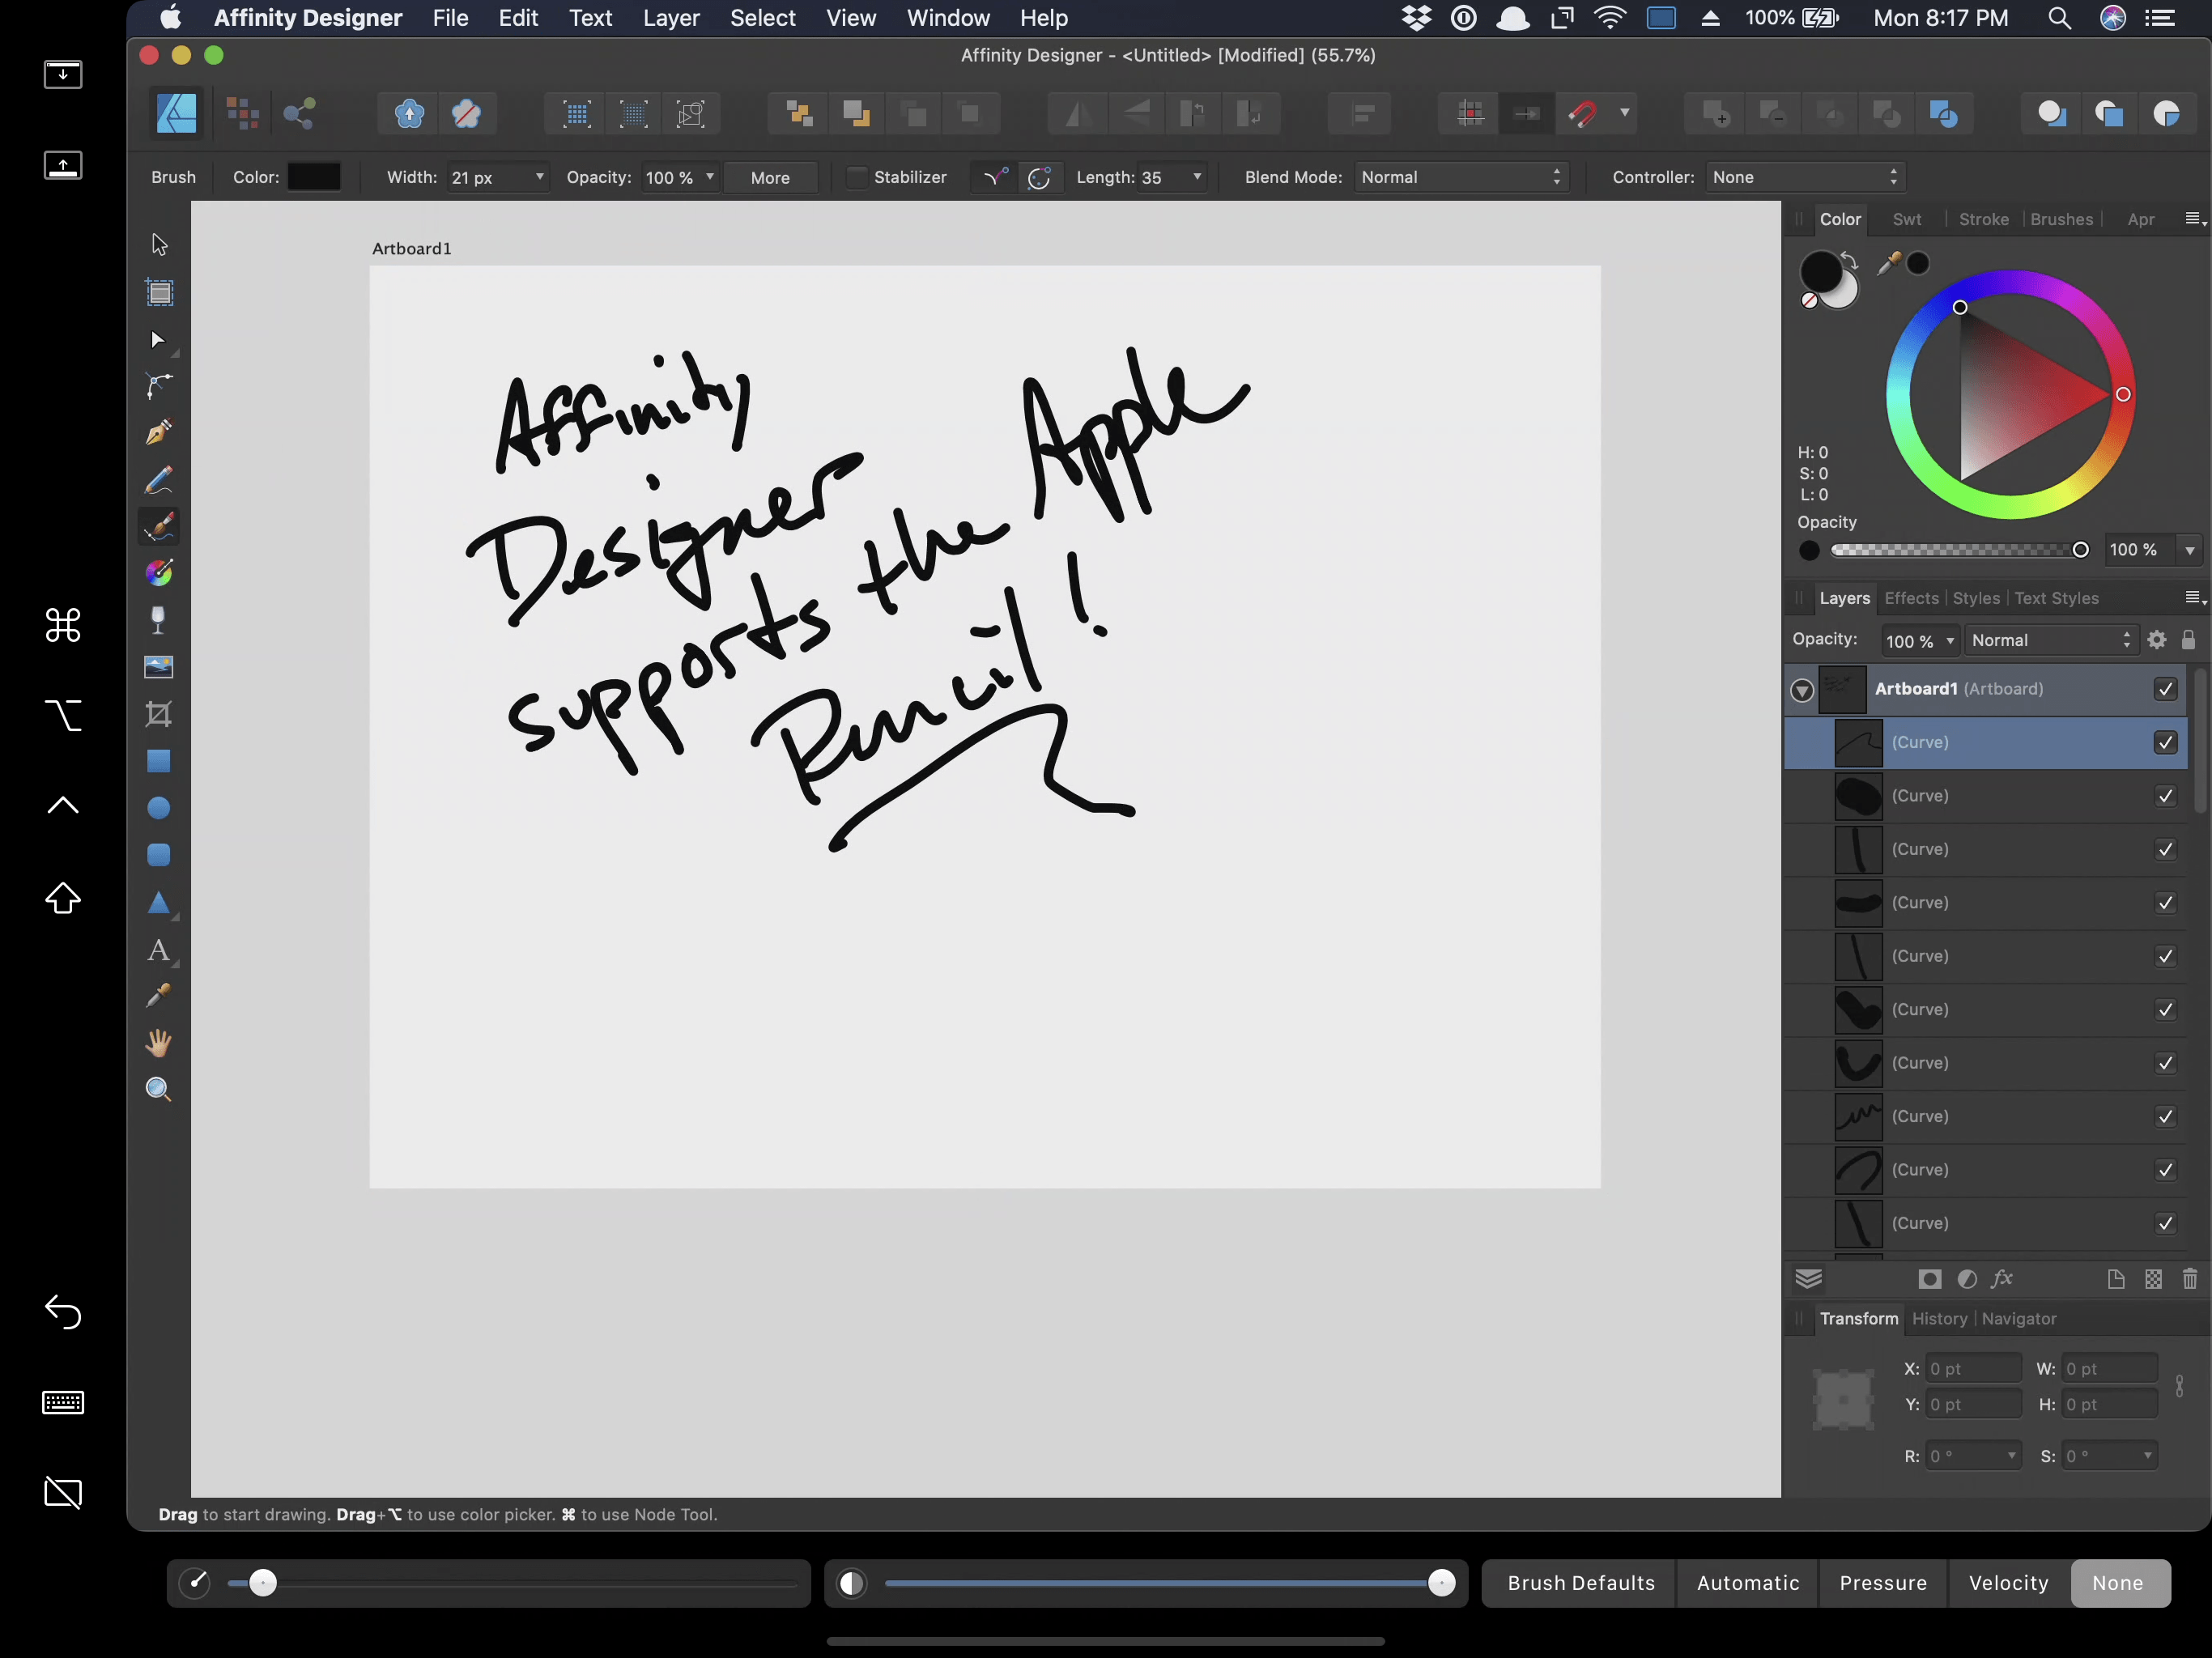 The Apple Pencil can be used to draw in Mac apps that have tablet support like Affinity Designer.